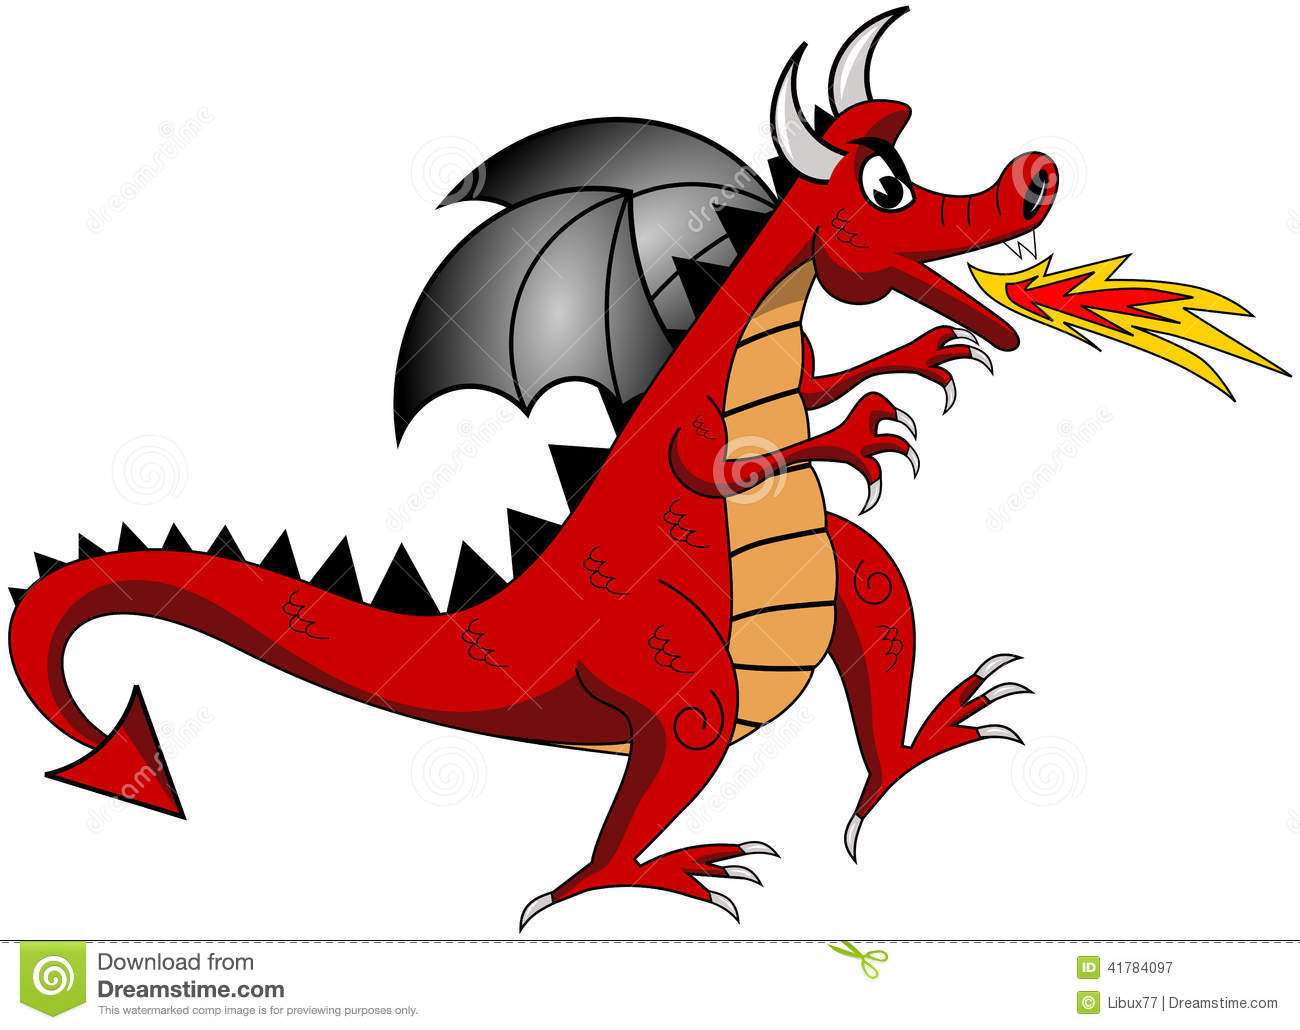 Fire breathing dragon images. Breathe clipart cartoon